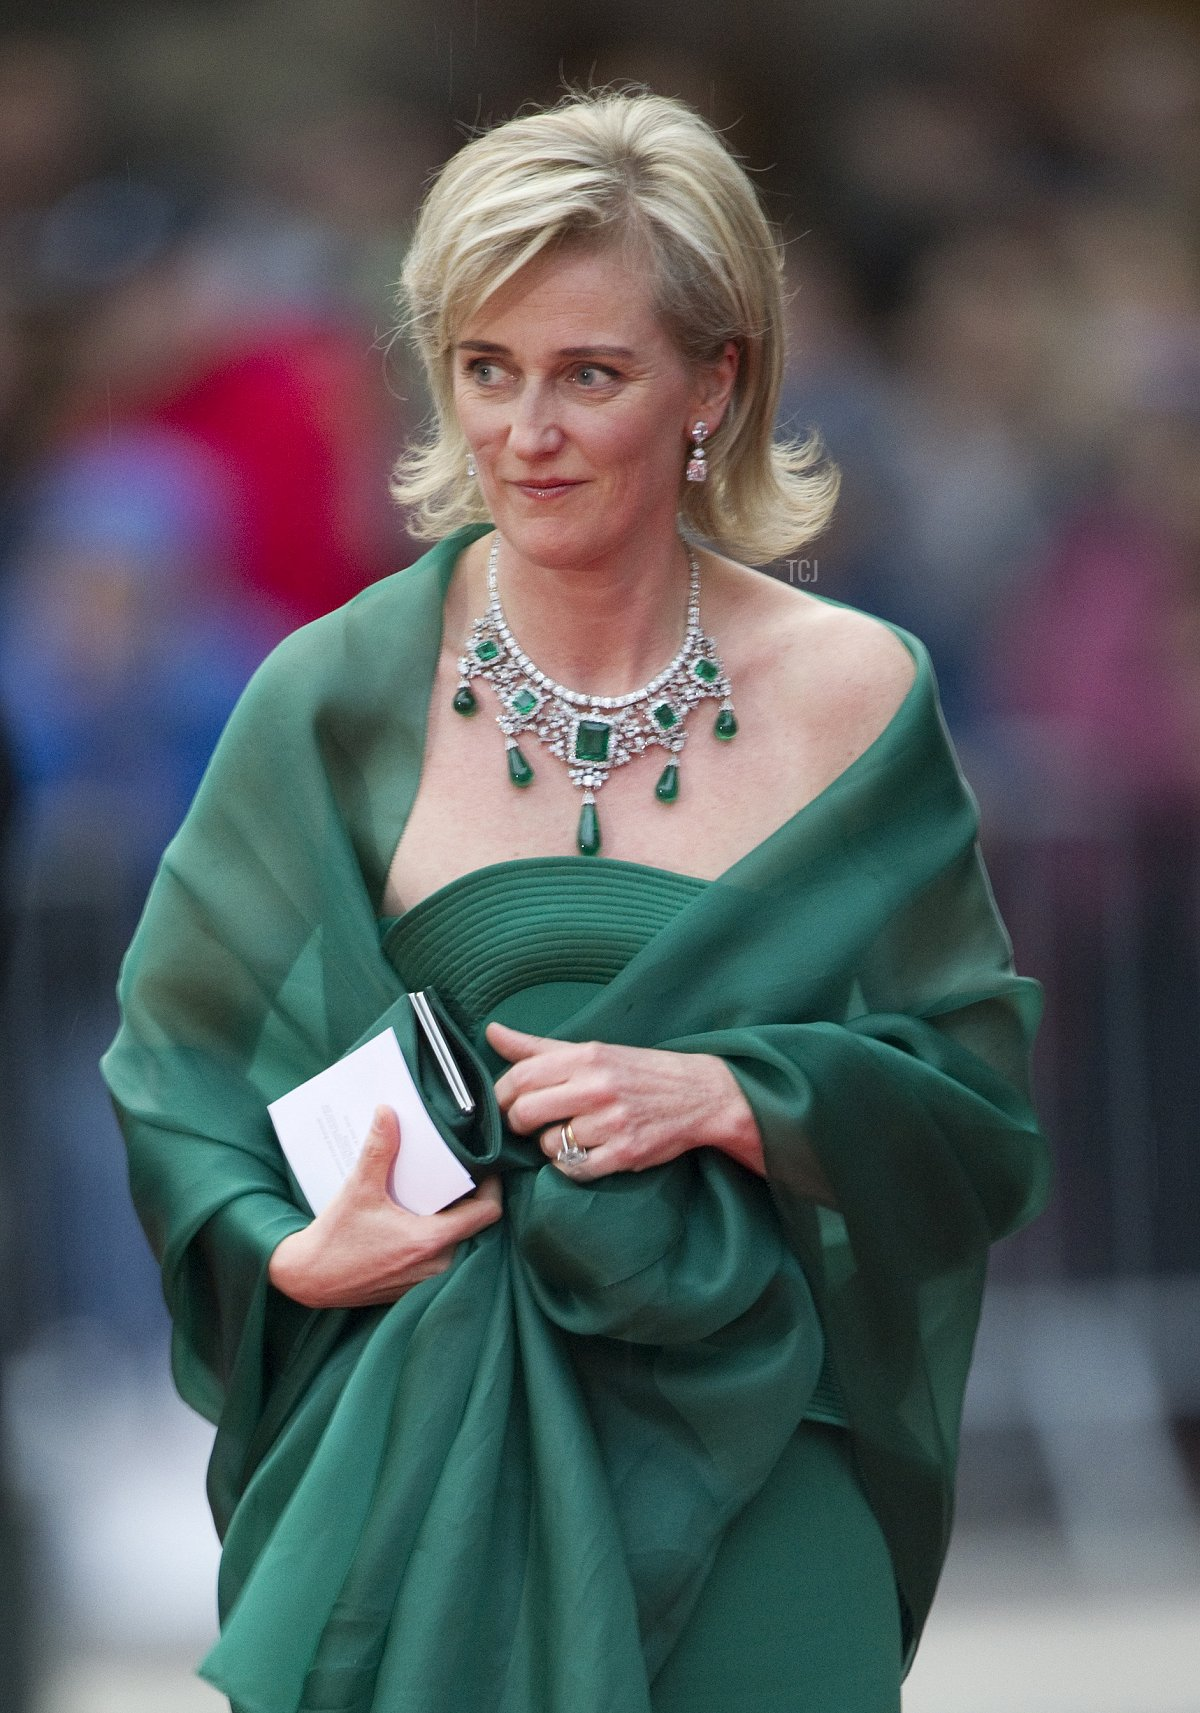 Princess Astrid of Belgium arrives for a gala performance at the Stockholm Concert Hall in Stockholm on June 18, 2010, at the start of the weekend's wedding celebrations